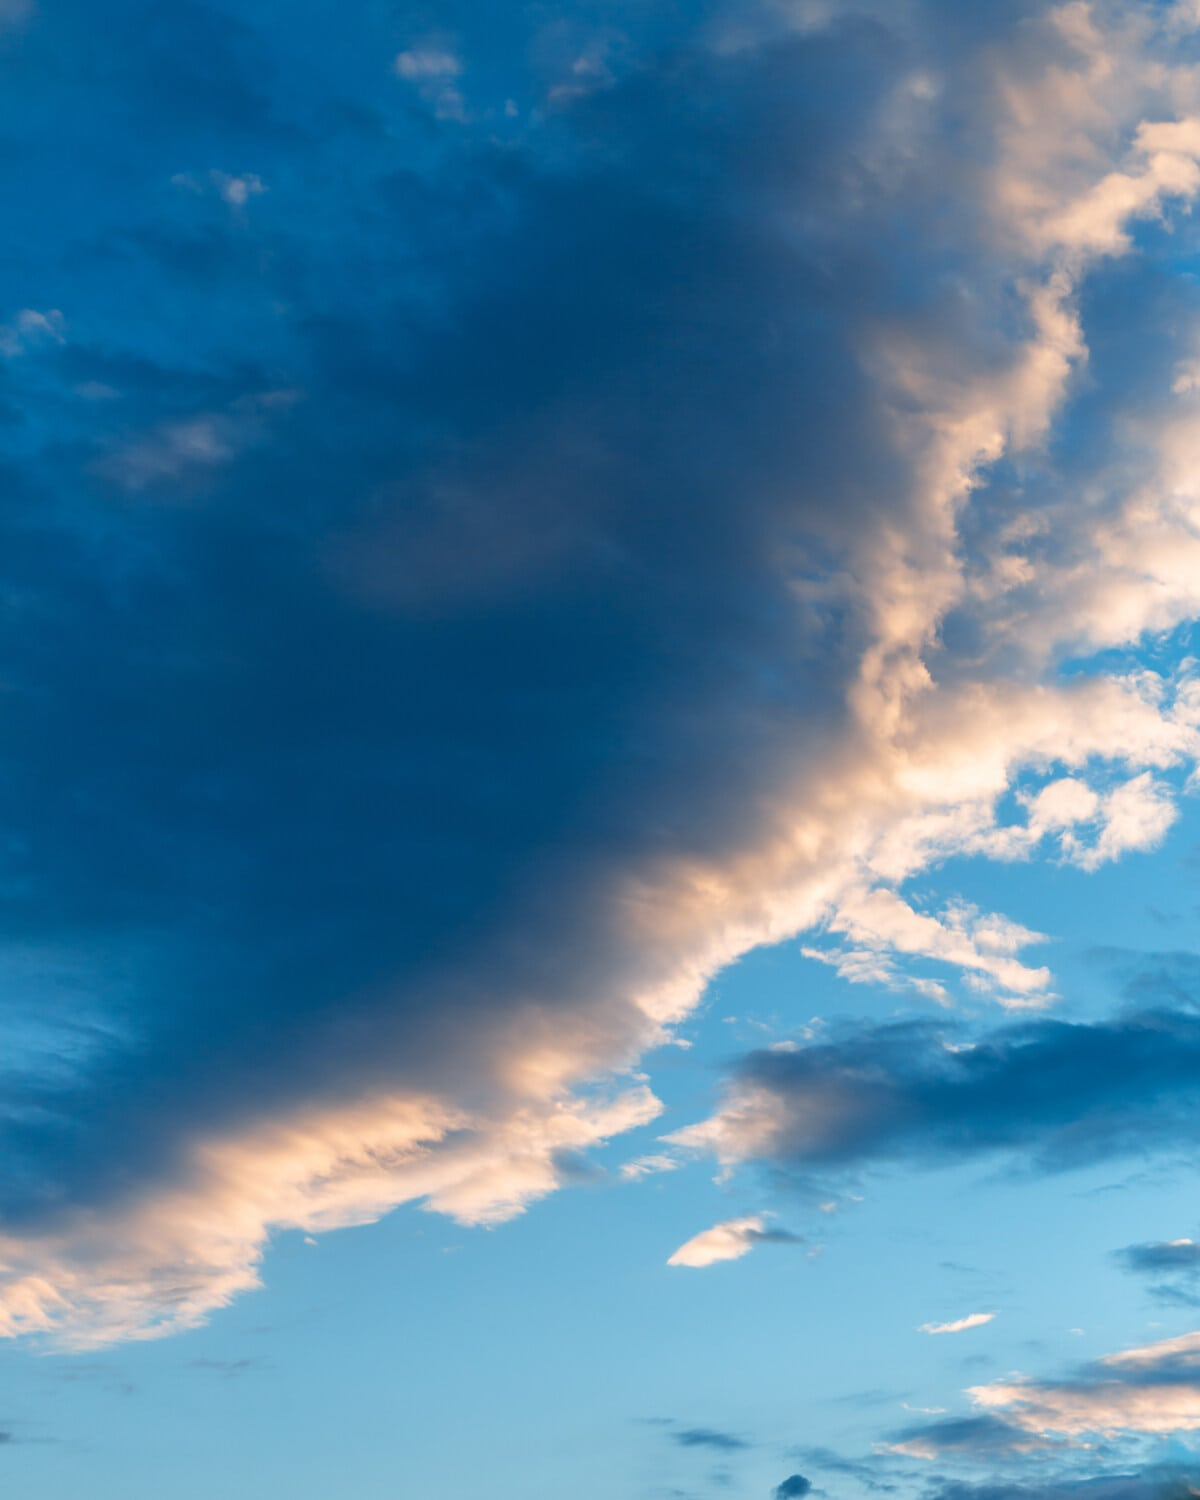 dark blue, clouds, horizon, cloudy, blue sky, meteorology, climate, breeze, atmosphere, cloudiness